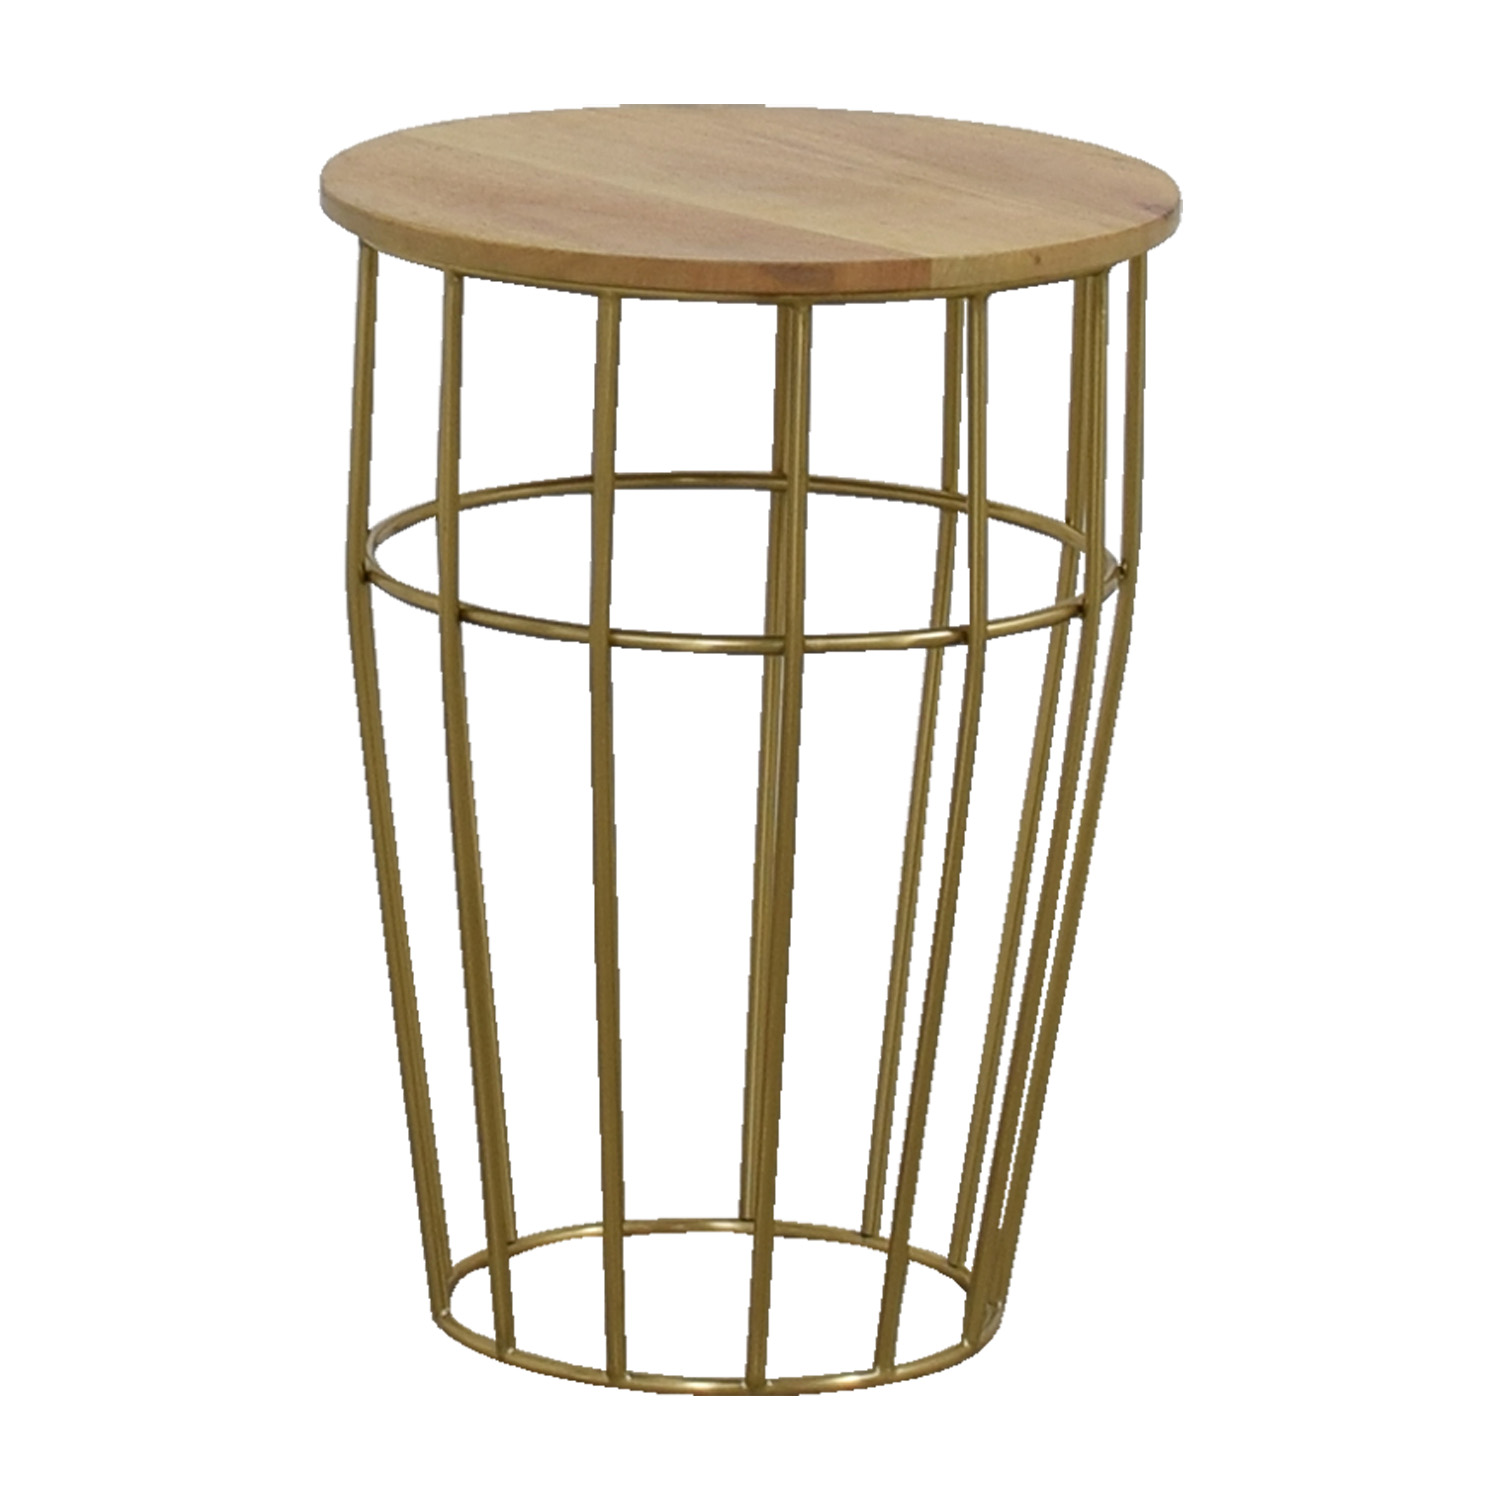 63 Off West Elm West Elm Gold And Wood Side Table Tables